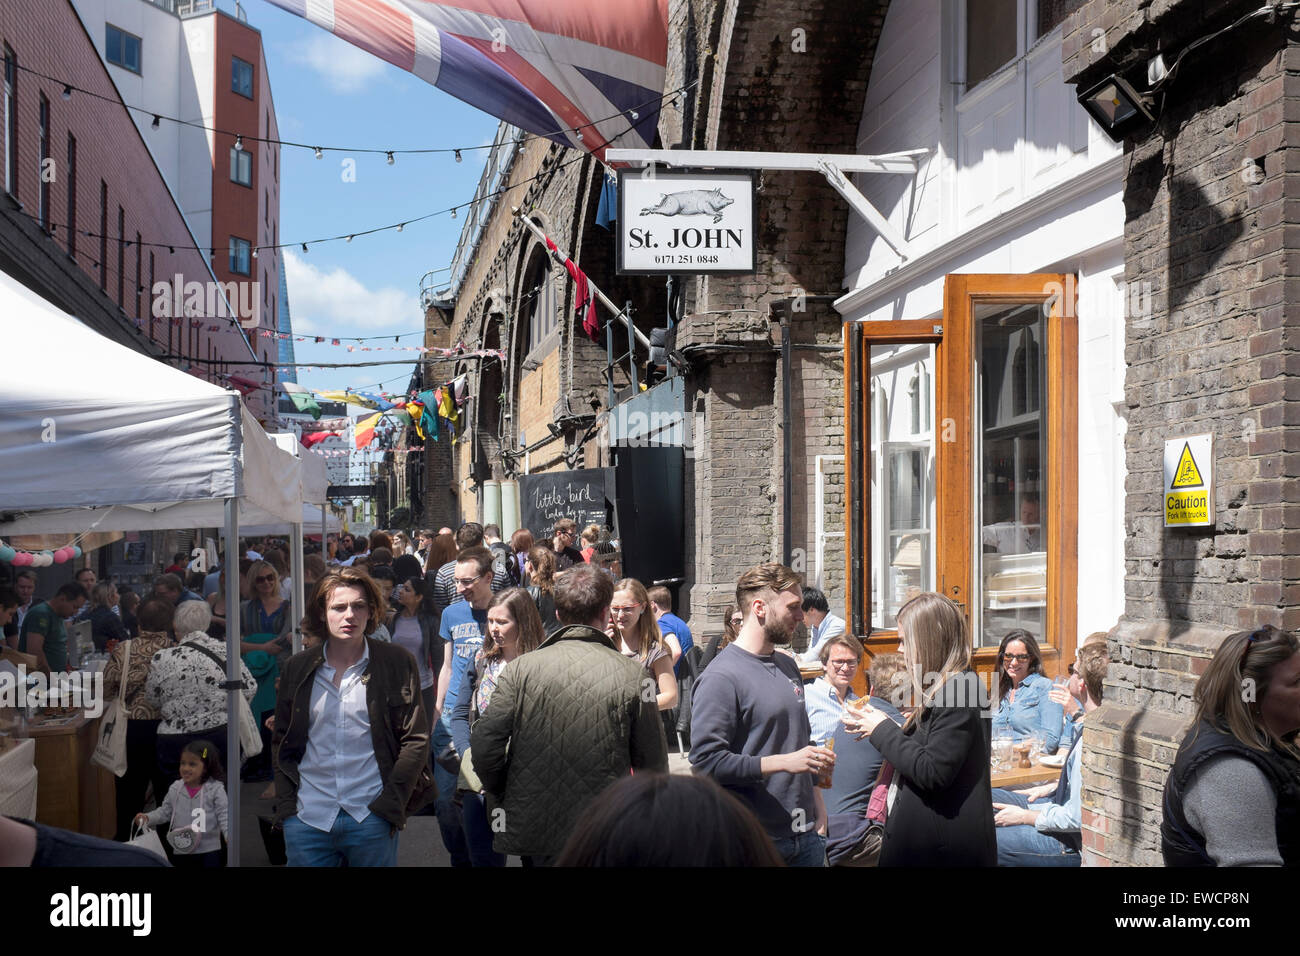 Maltby Street Food Market London - Stock Image